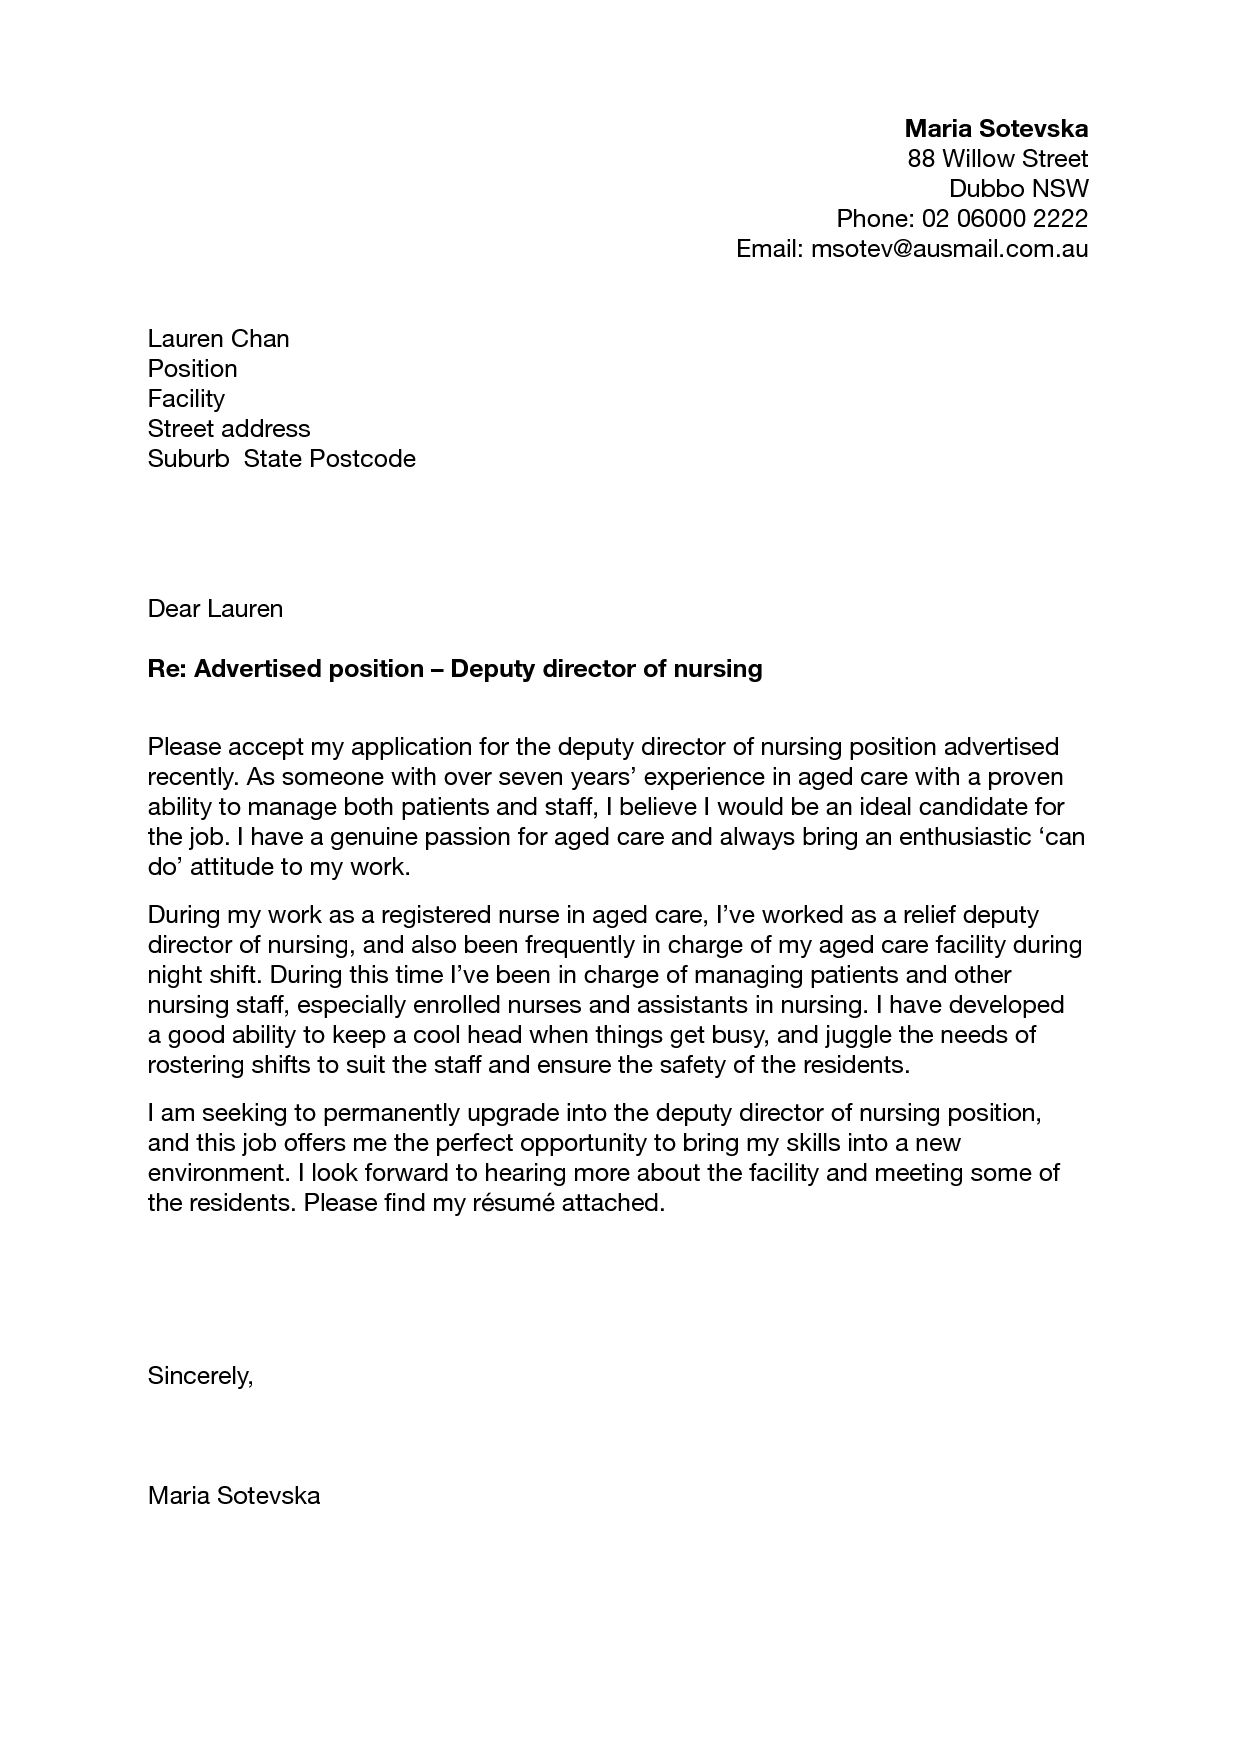 An individual should always add an enticing cover letter ...